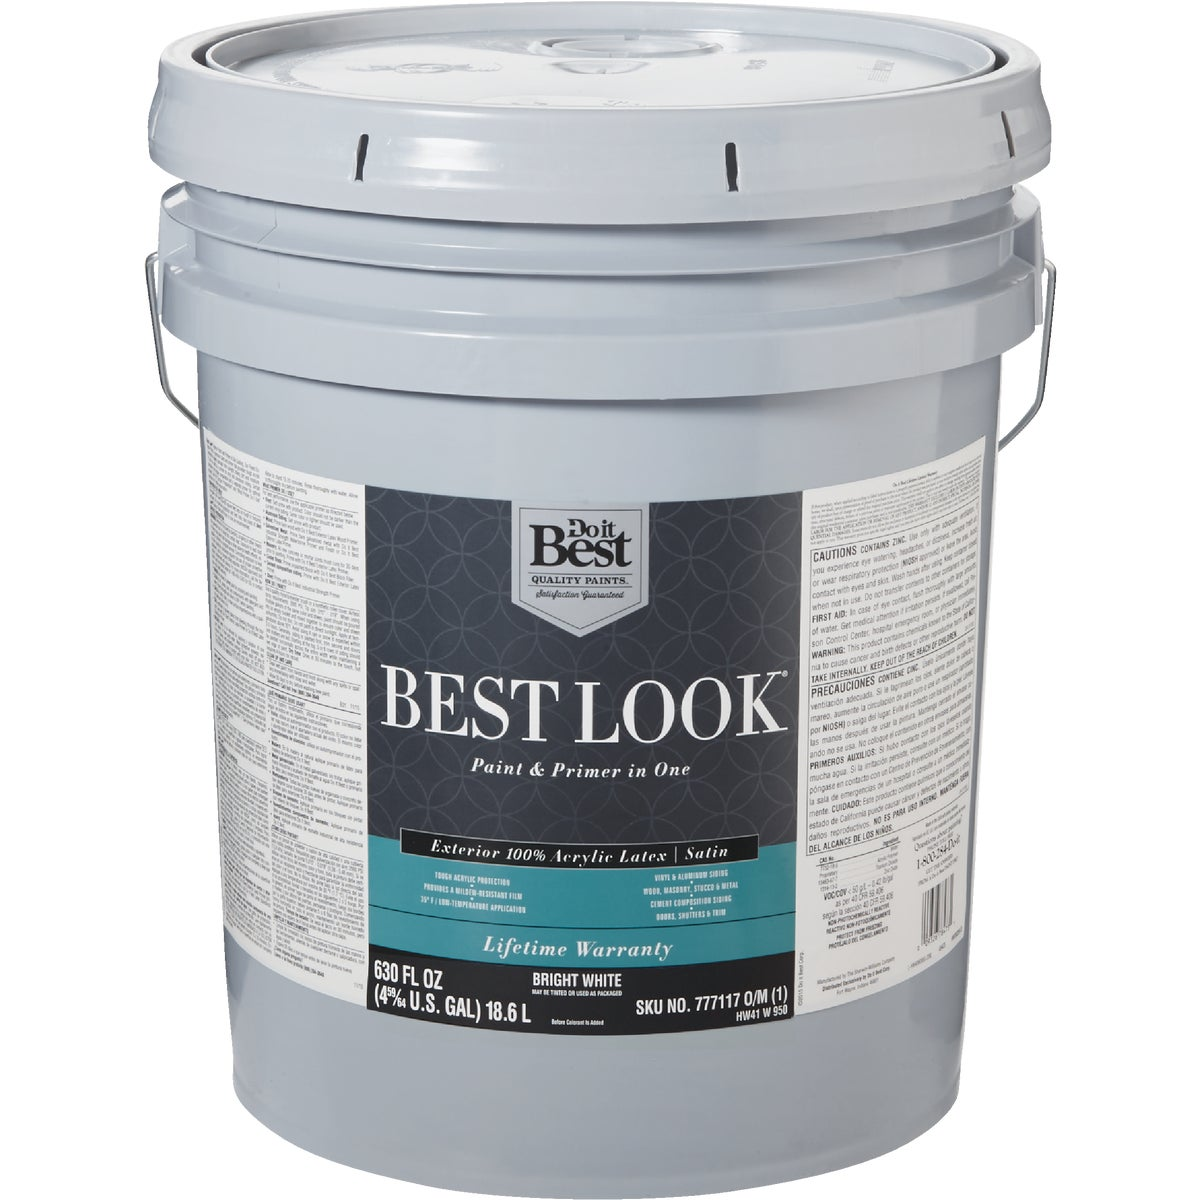 EXT SAT BRIGHT WHT PAINT - HW41W0950-20 by Do it Best